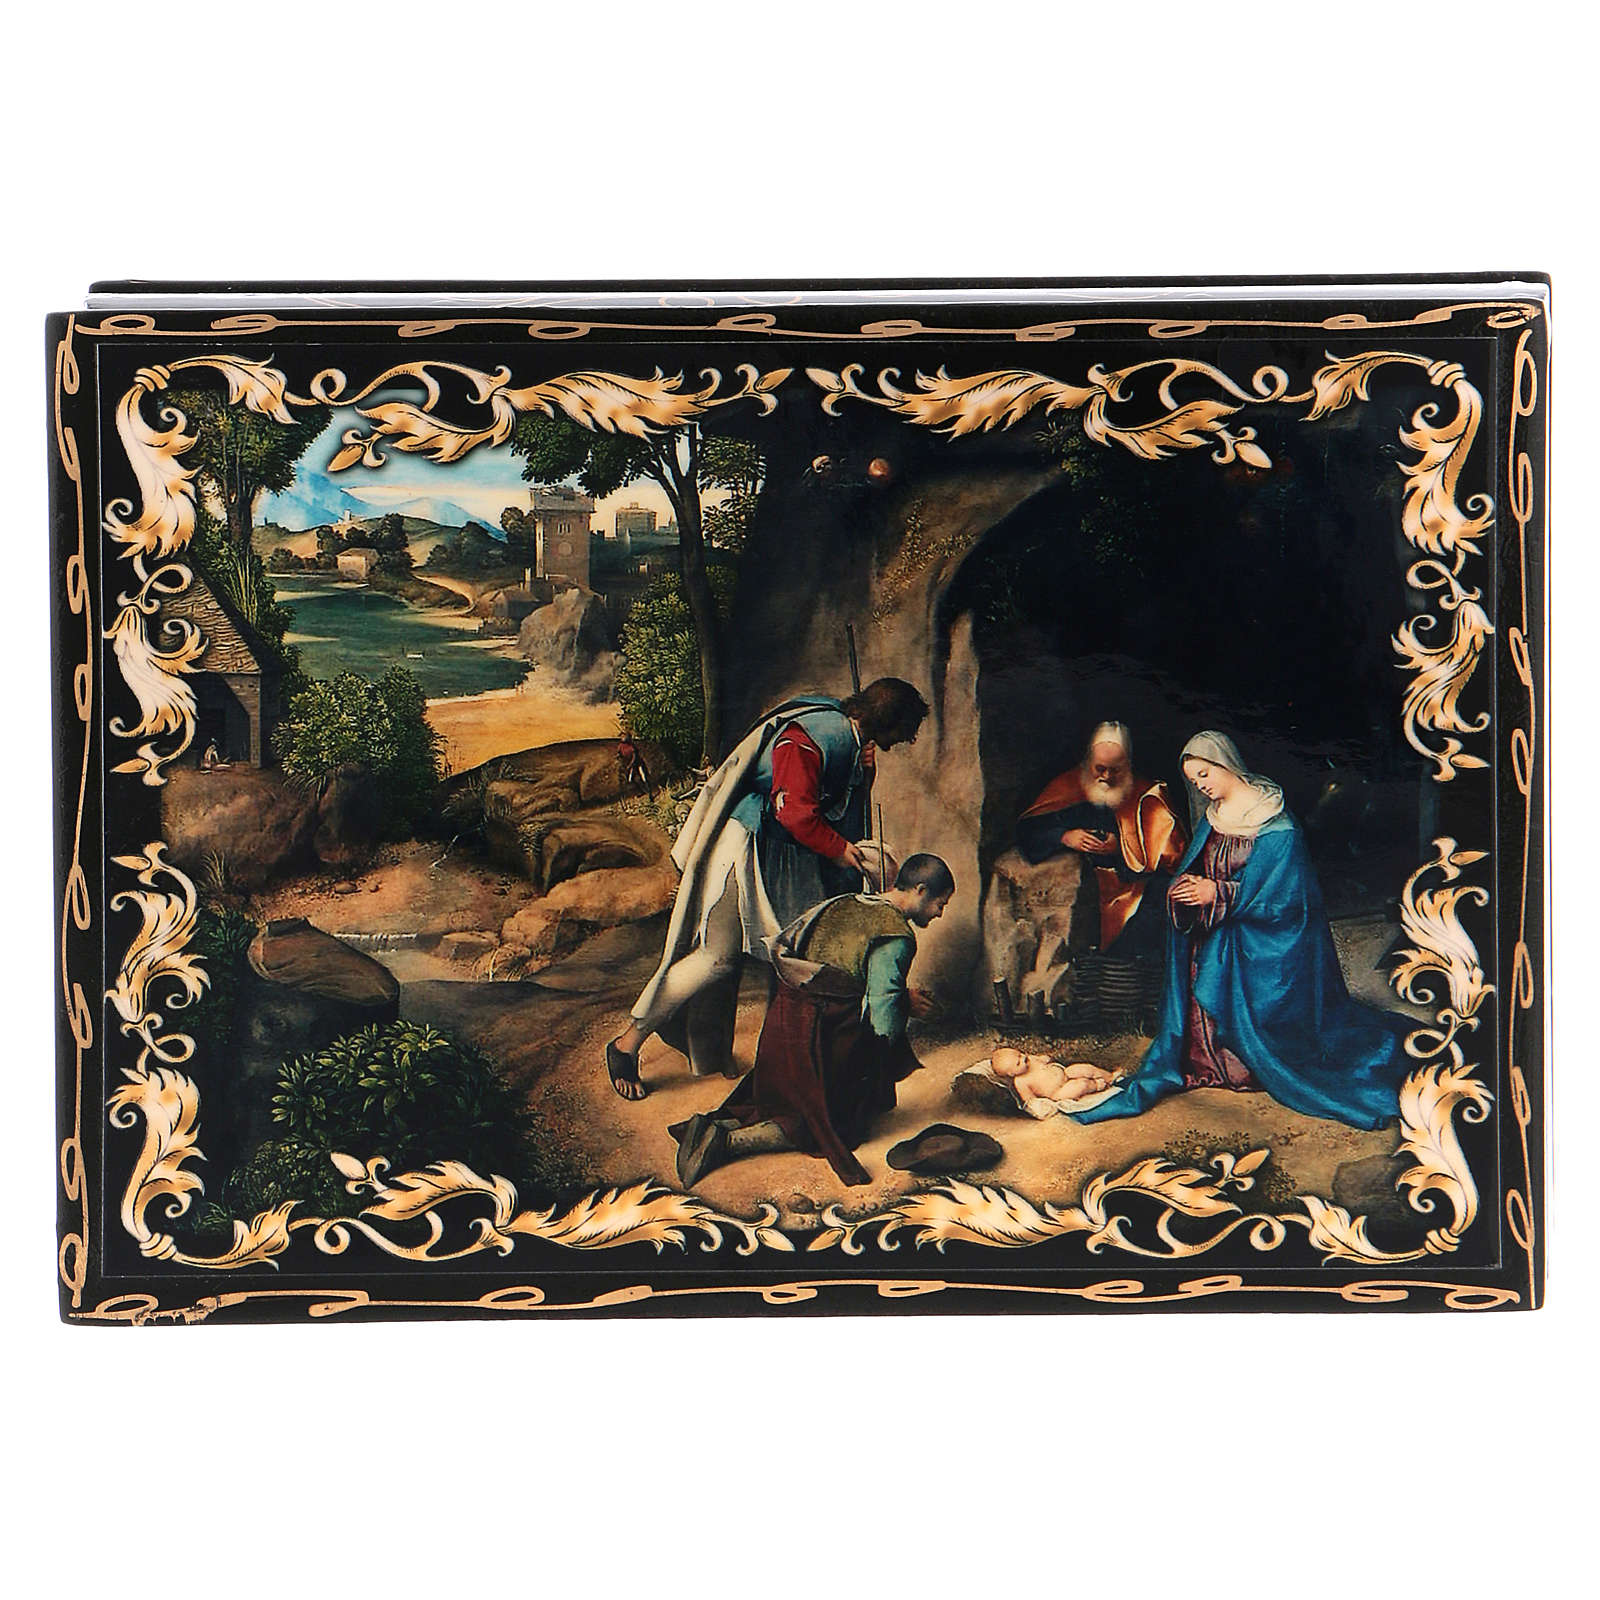 Russian papier-mâché and lacquer painted box The Adoration of the Shepherds 14x10 cm 4